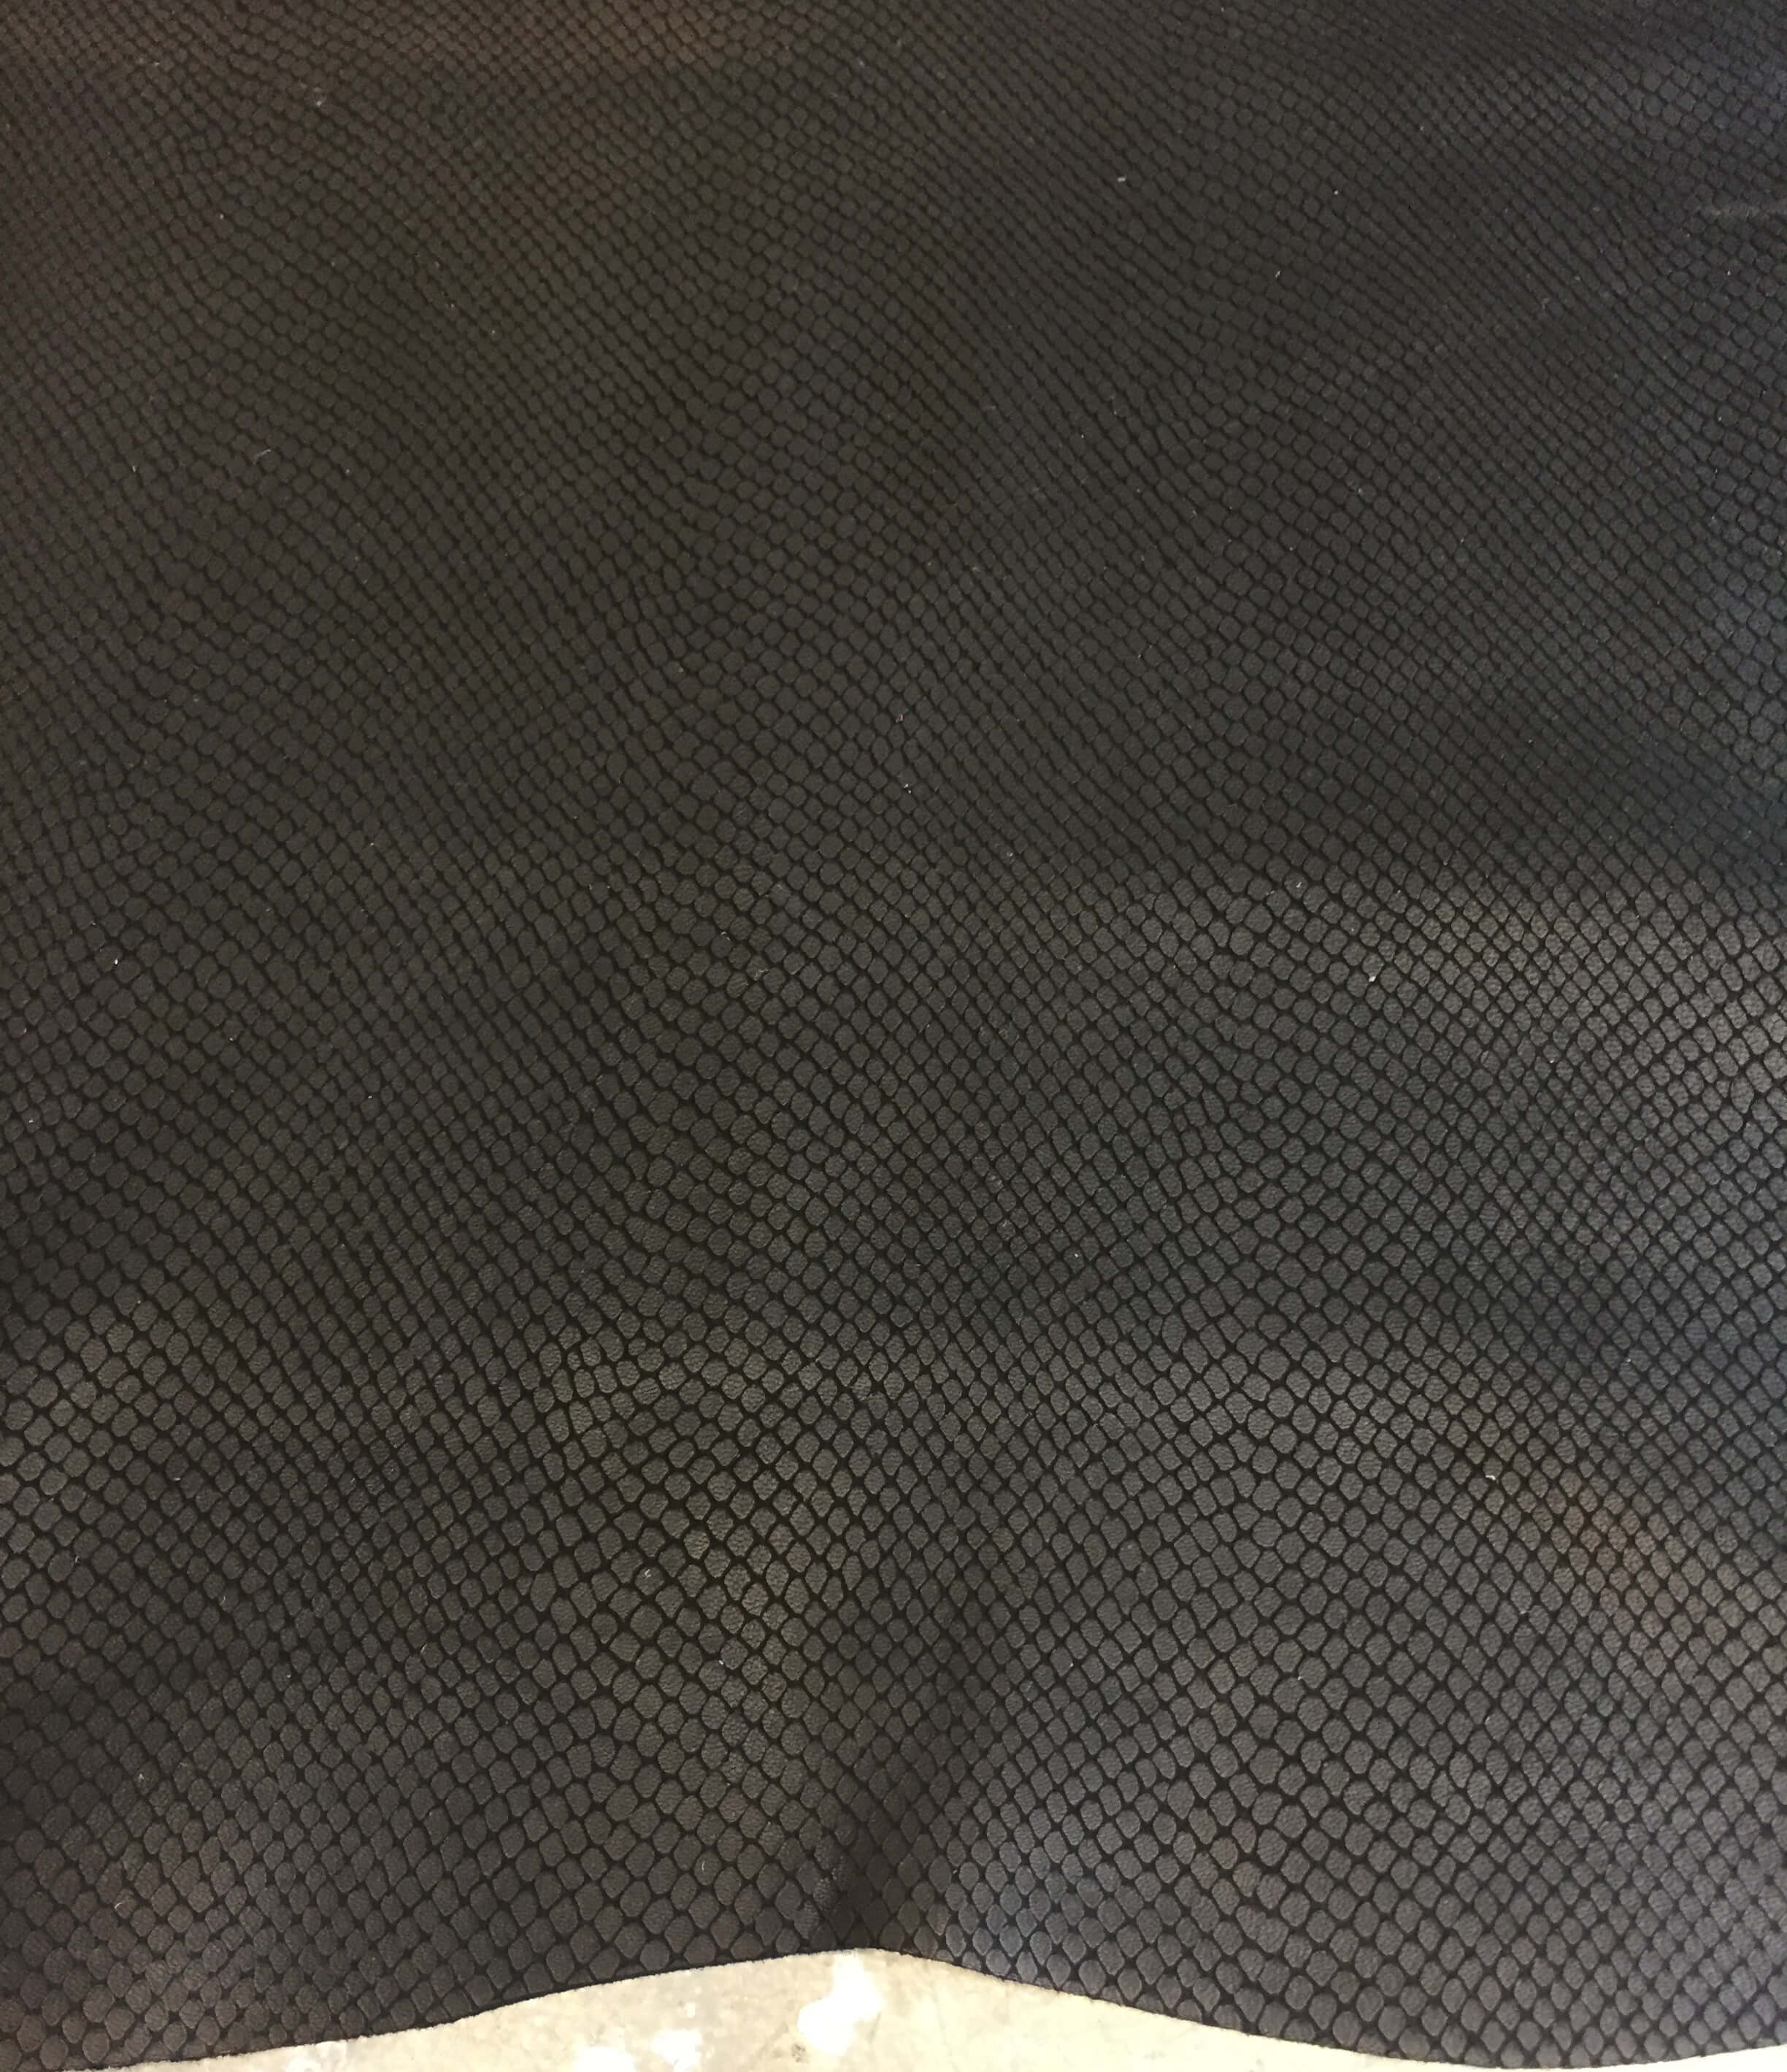 Black Genuine Leather Hide, Snakeskin Embossed for Crafting and Sewing Projects